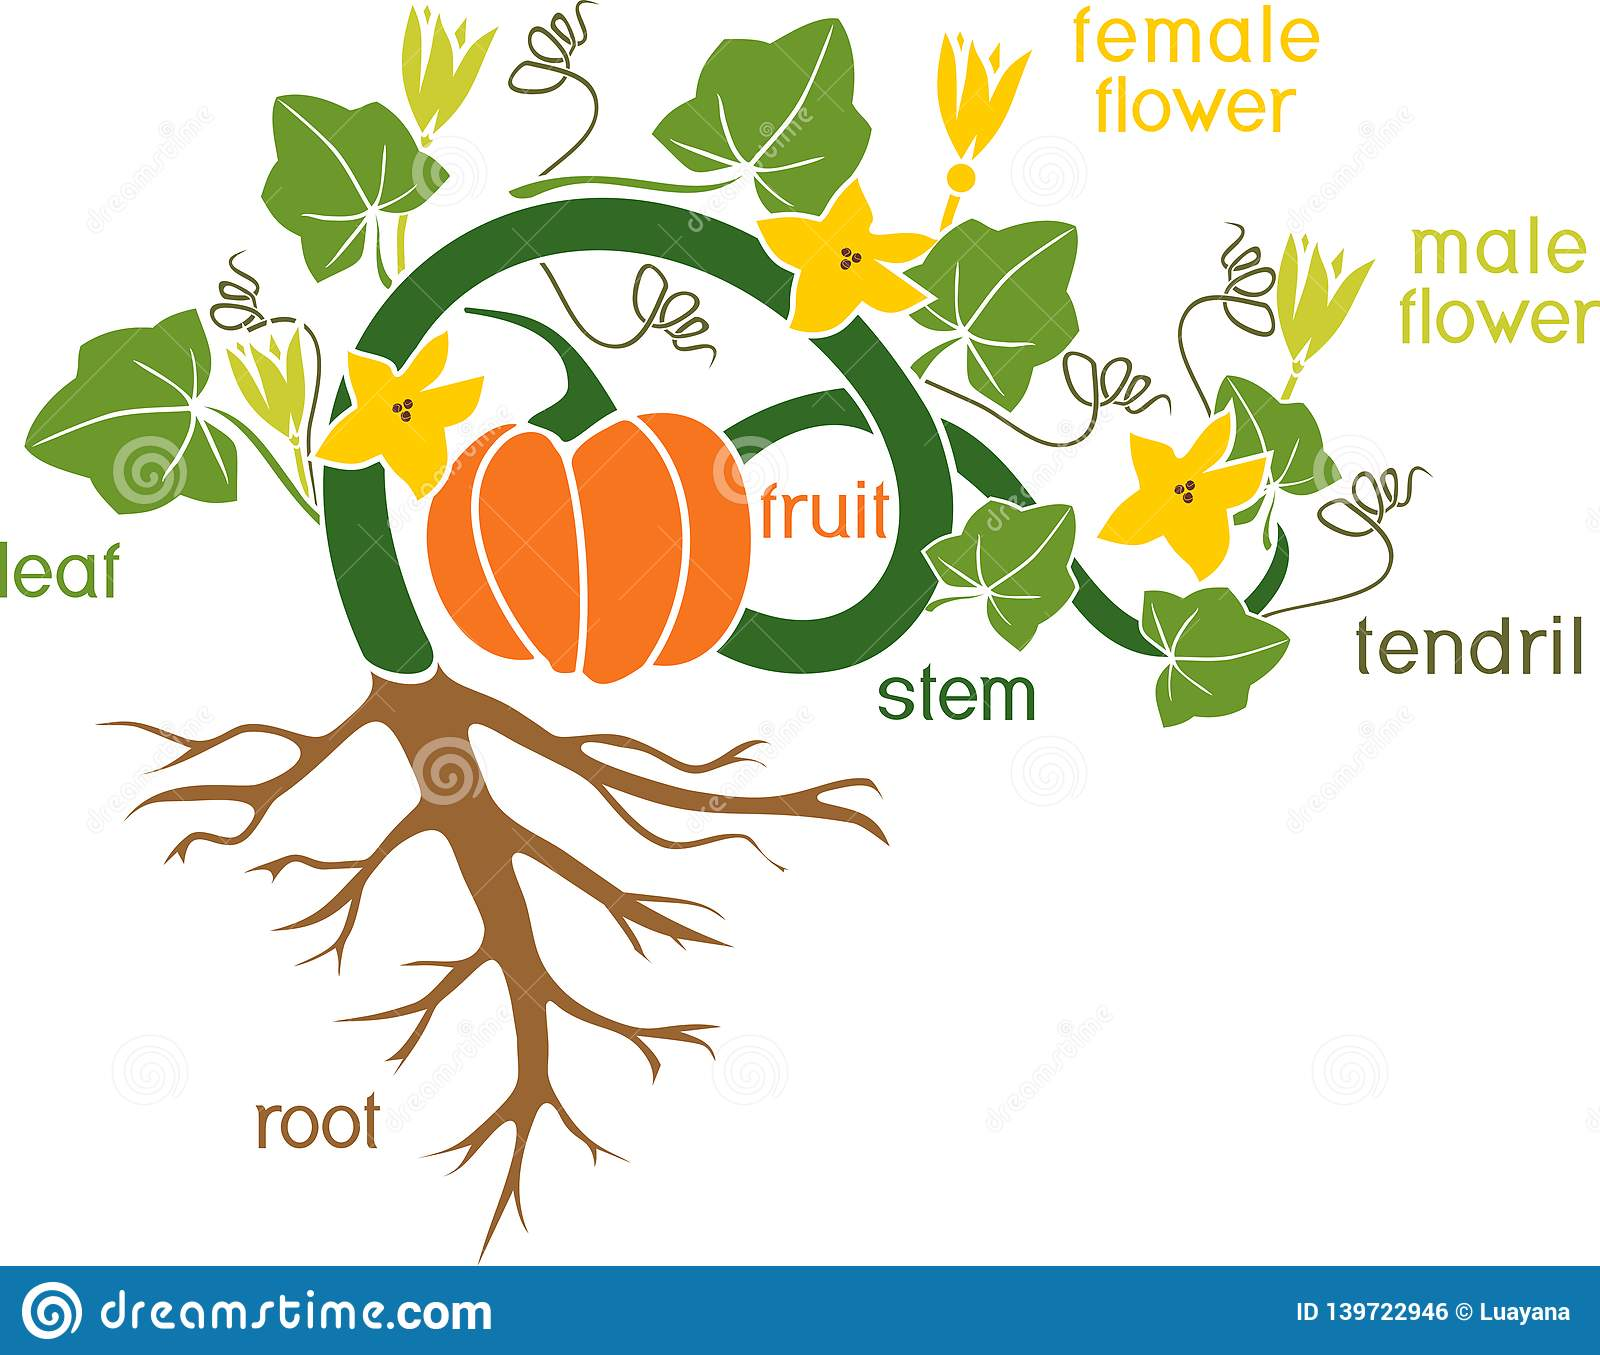 Parts Of Plant Morphology Of Pumpkin Plant With Fruit